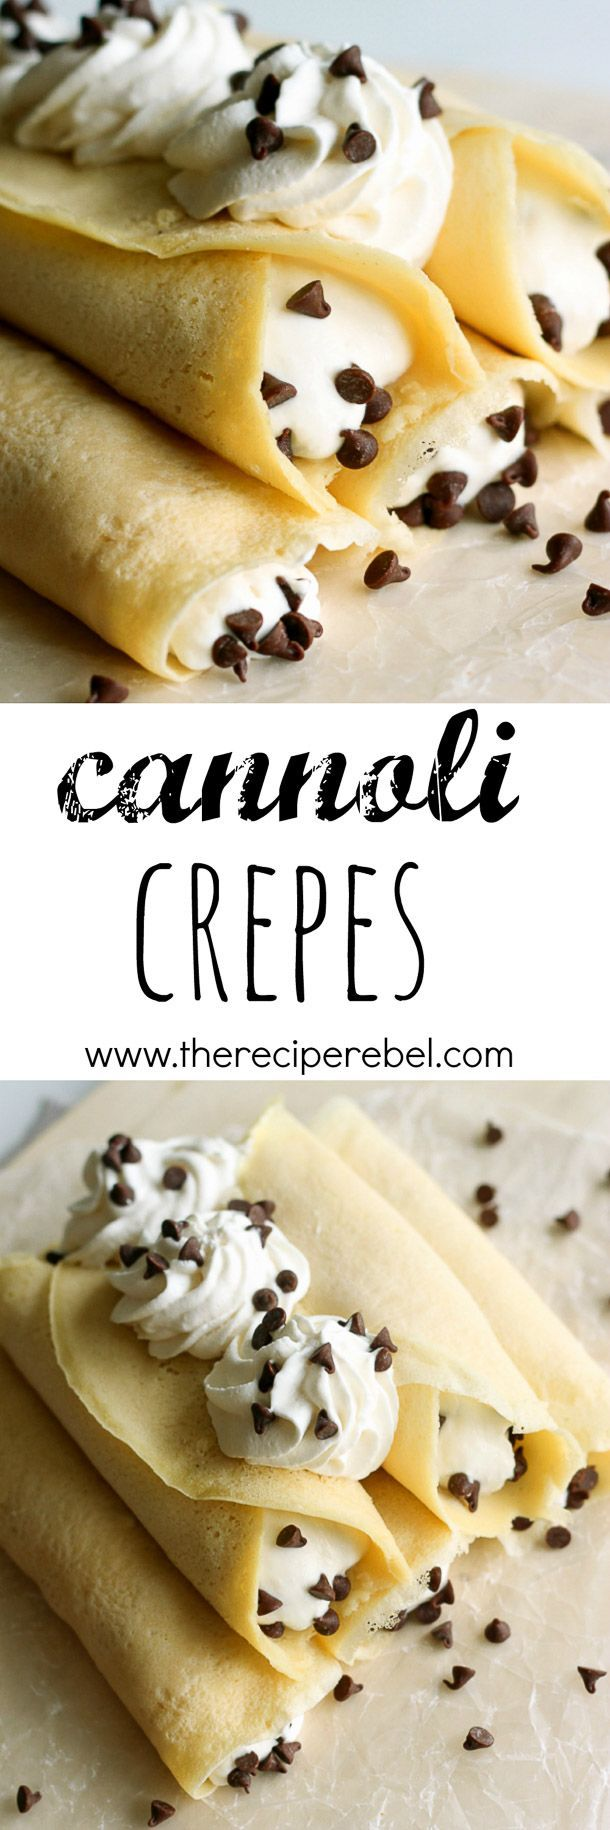 Cannoli Crepes: Soft homemade crepes filled with sweet ricotta cream and chocolate chips, topped with whipped cream and more